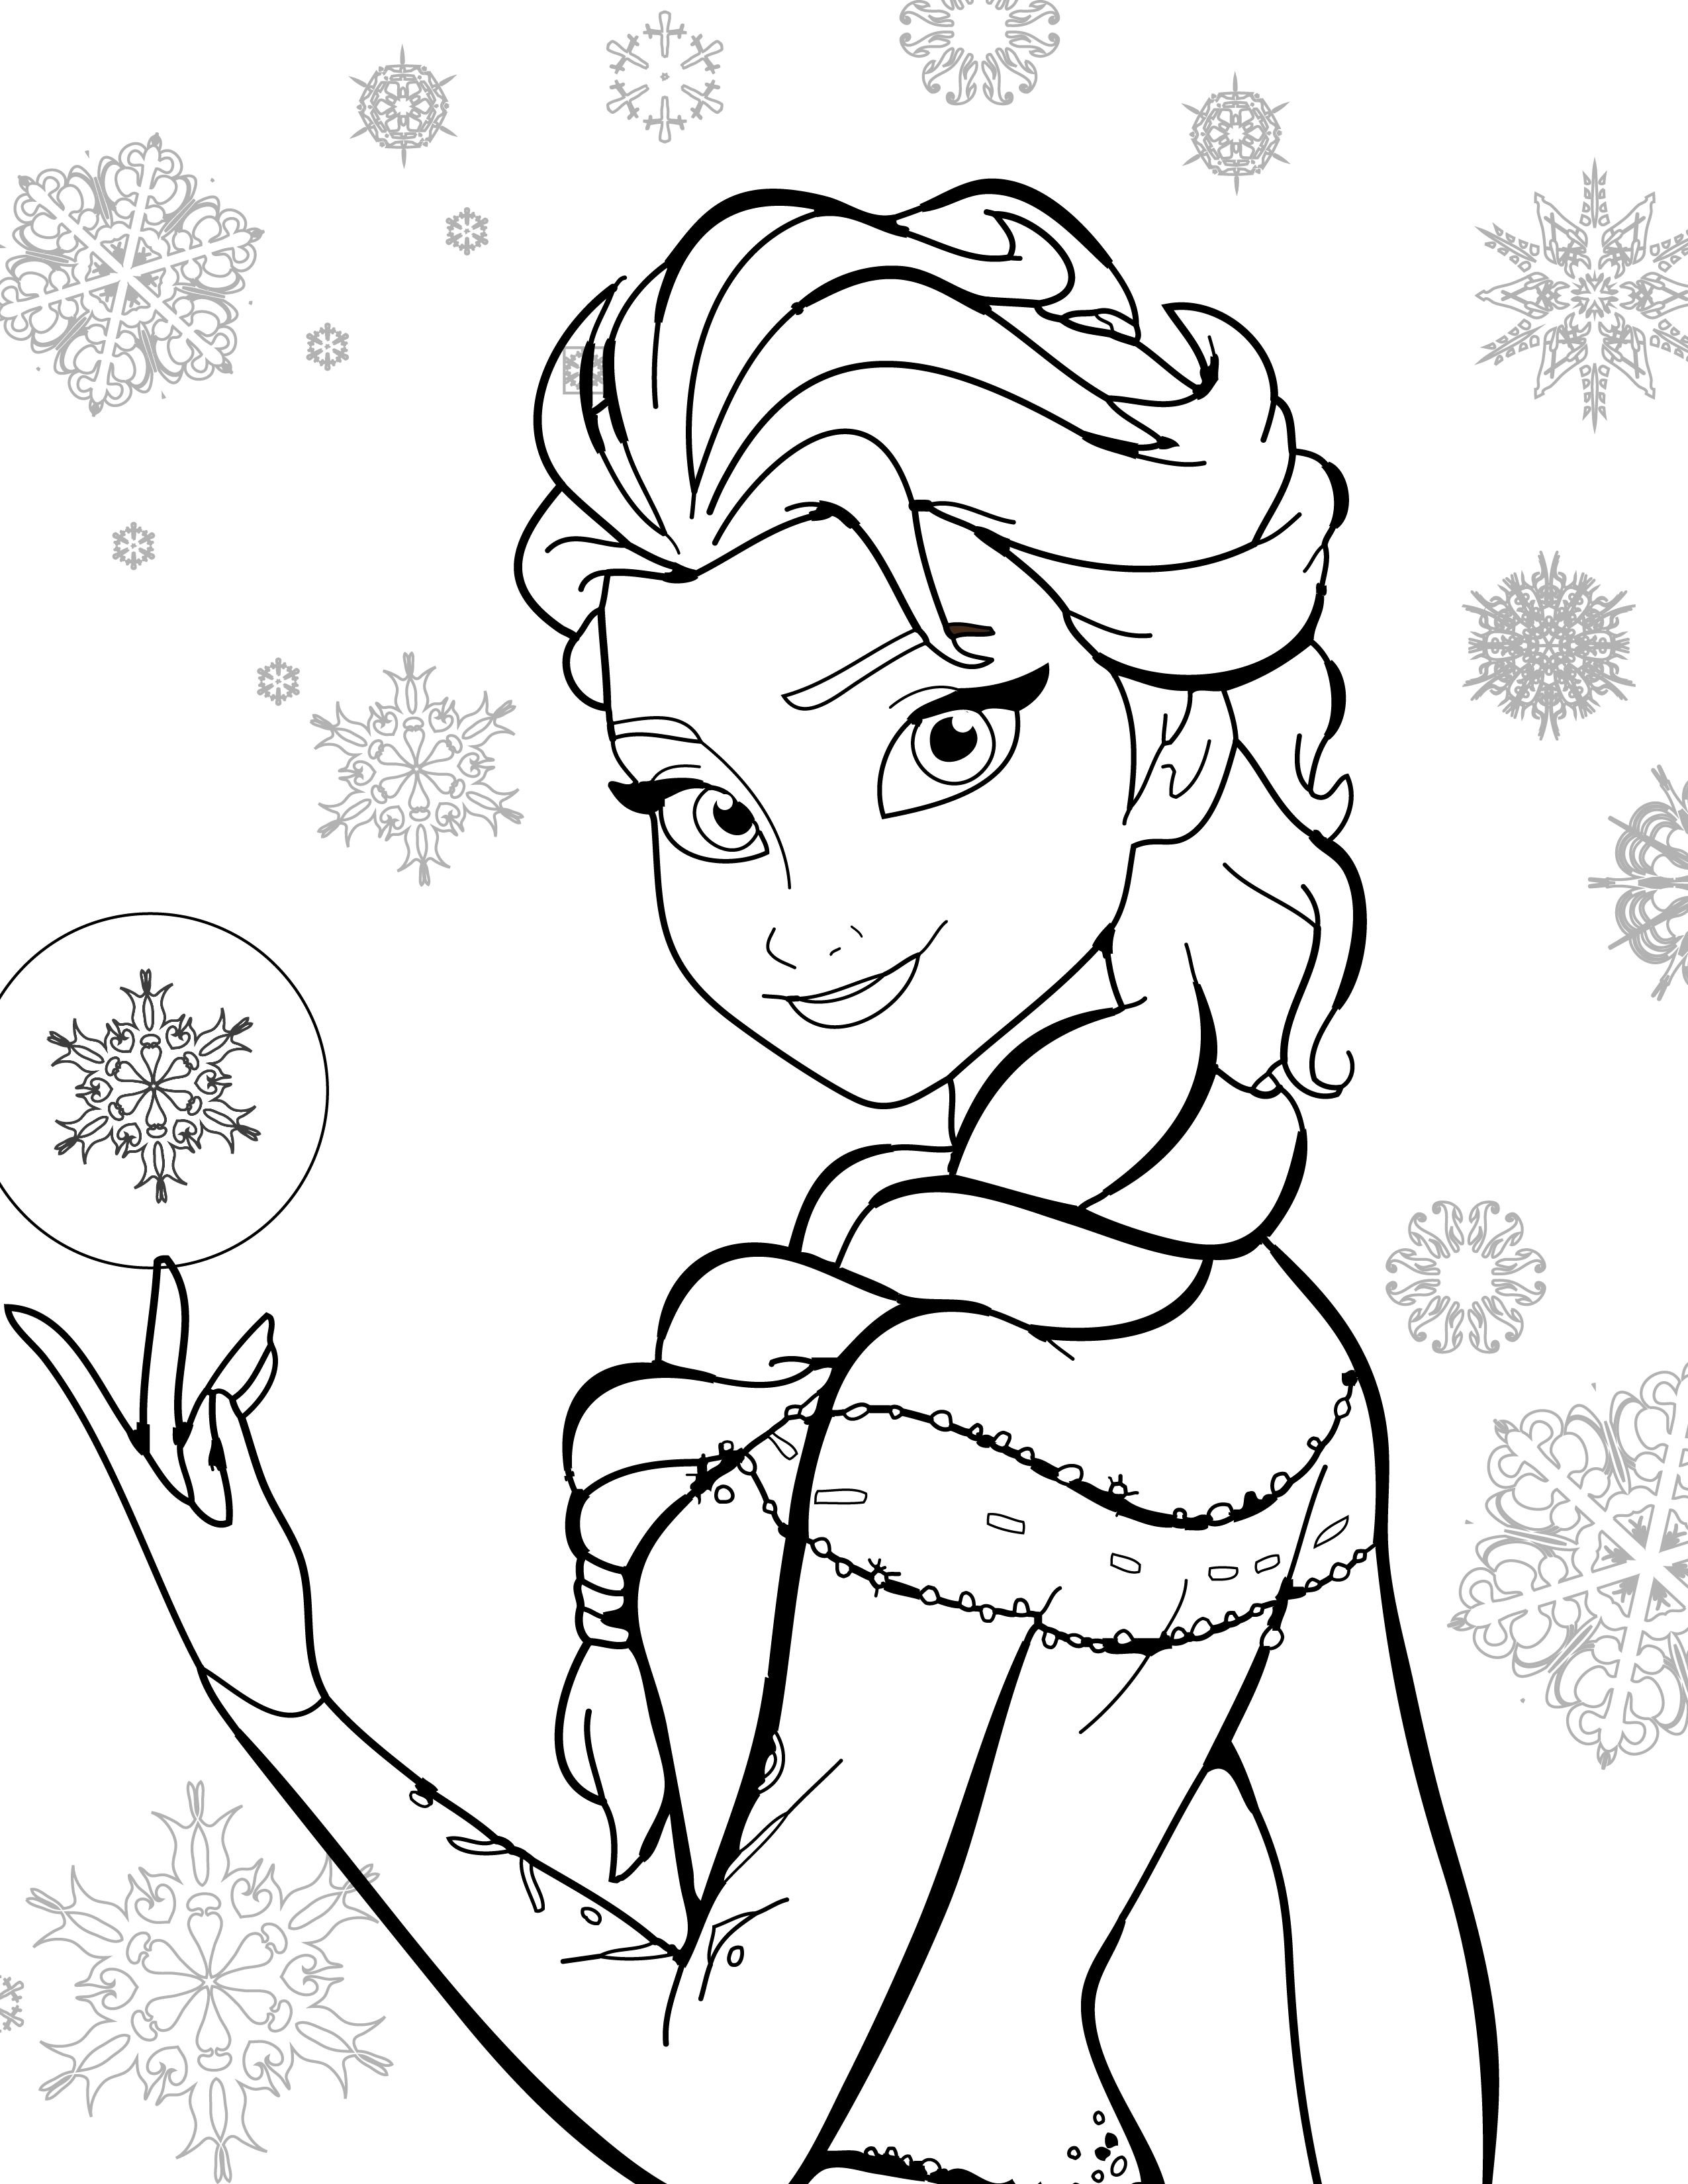 colouring pages of disney frozen 15 beautiful disney frozen coloring pages free instant of colouring pages frozen disney